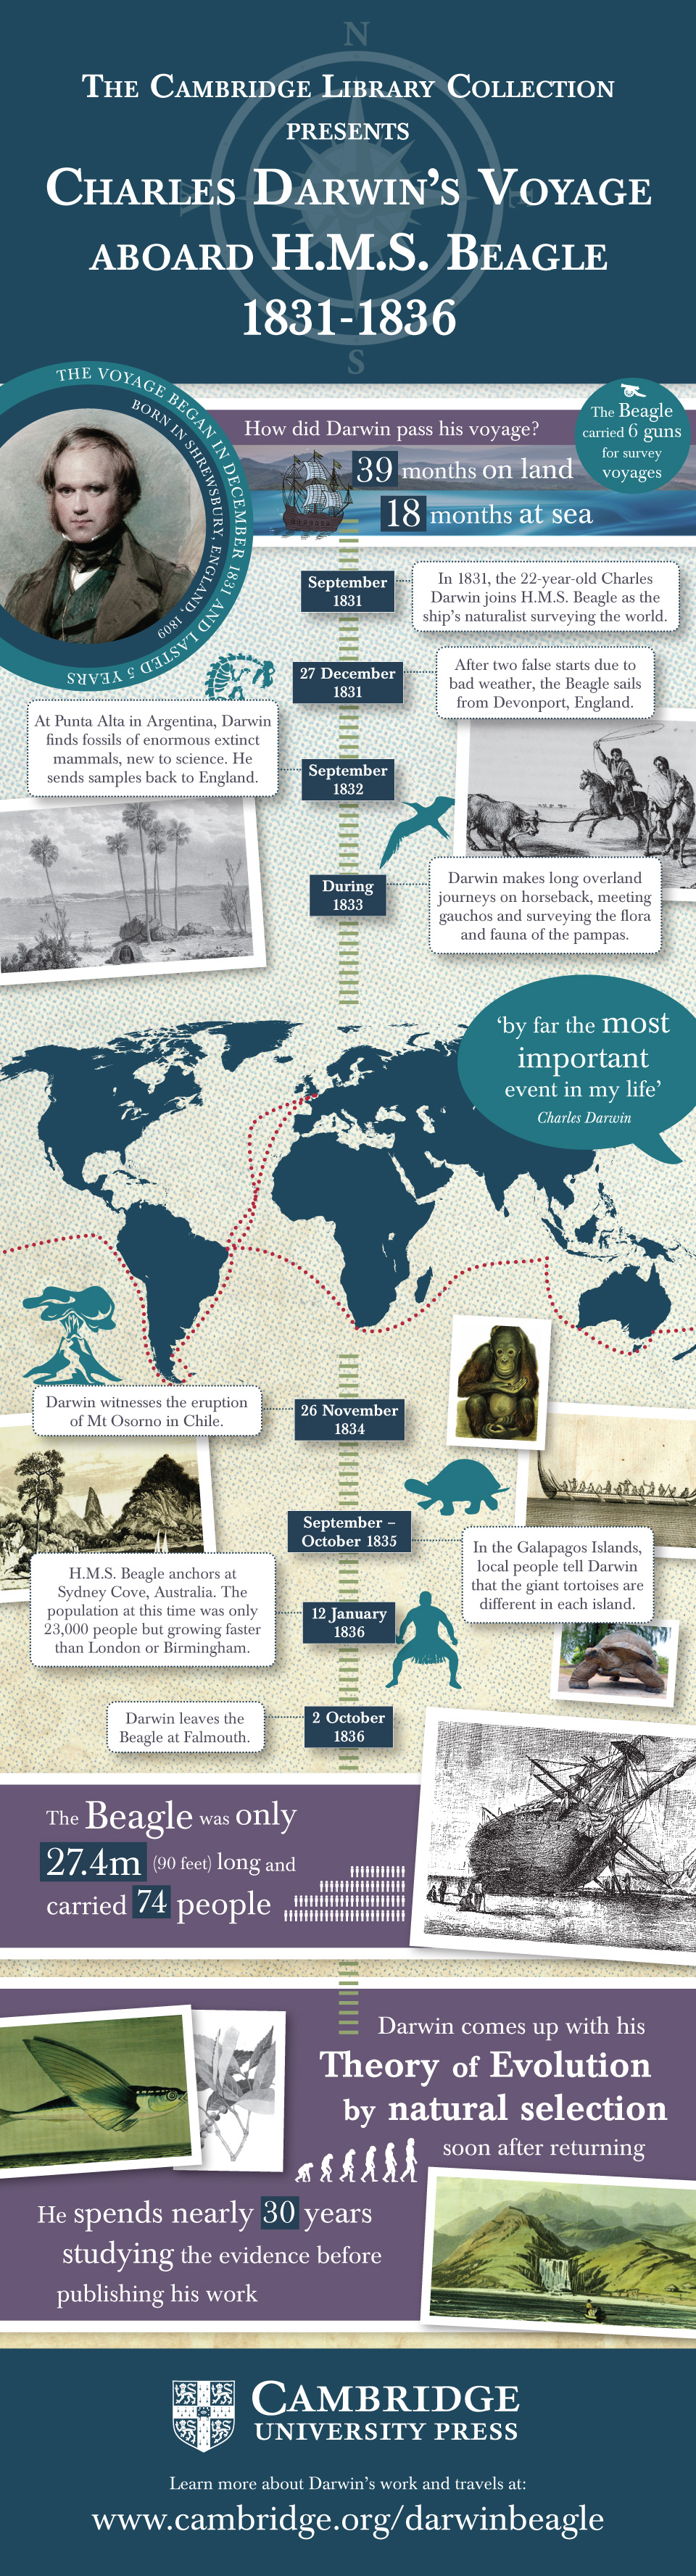 Infographic detailing Charles Darwin's voyage aboard HMS Beagle